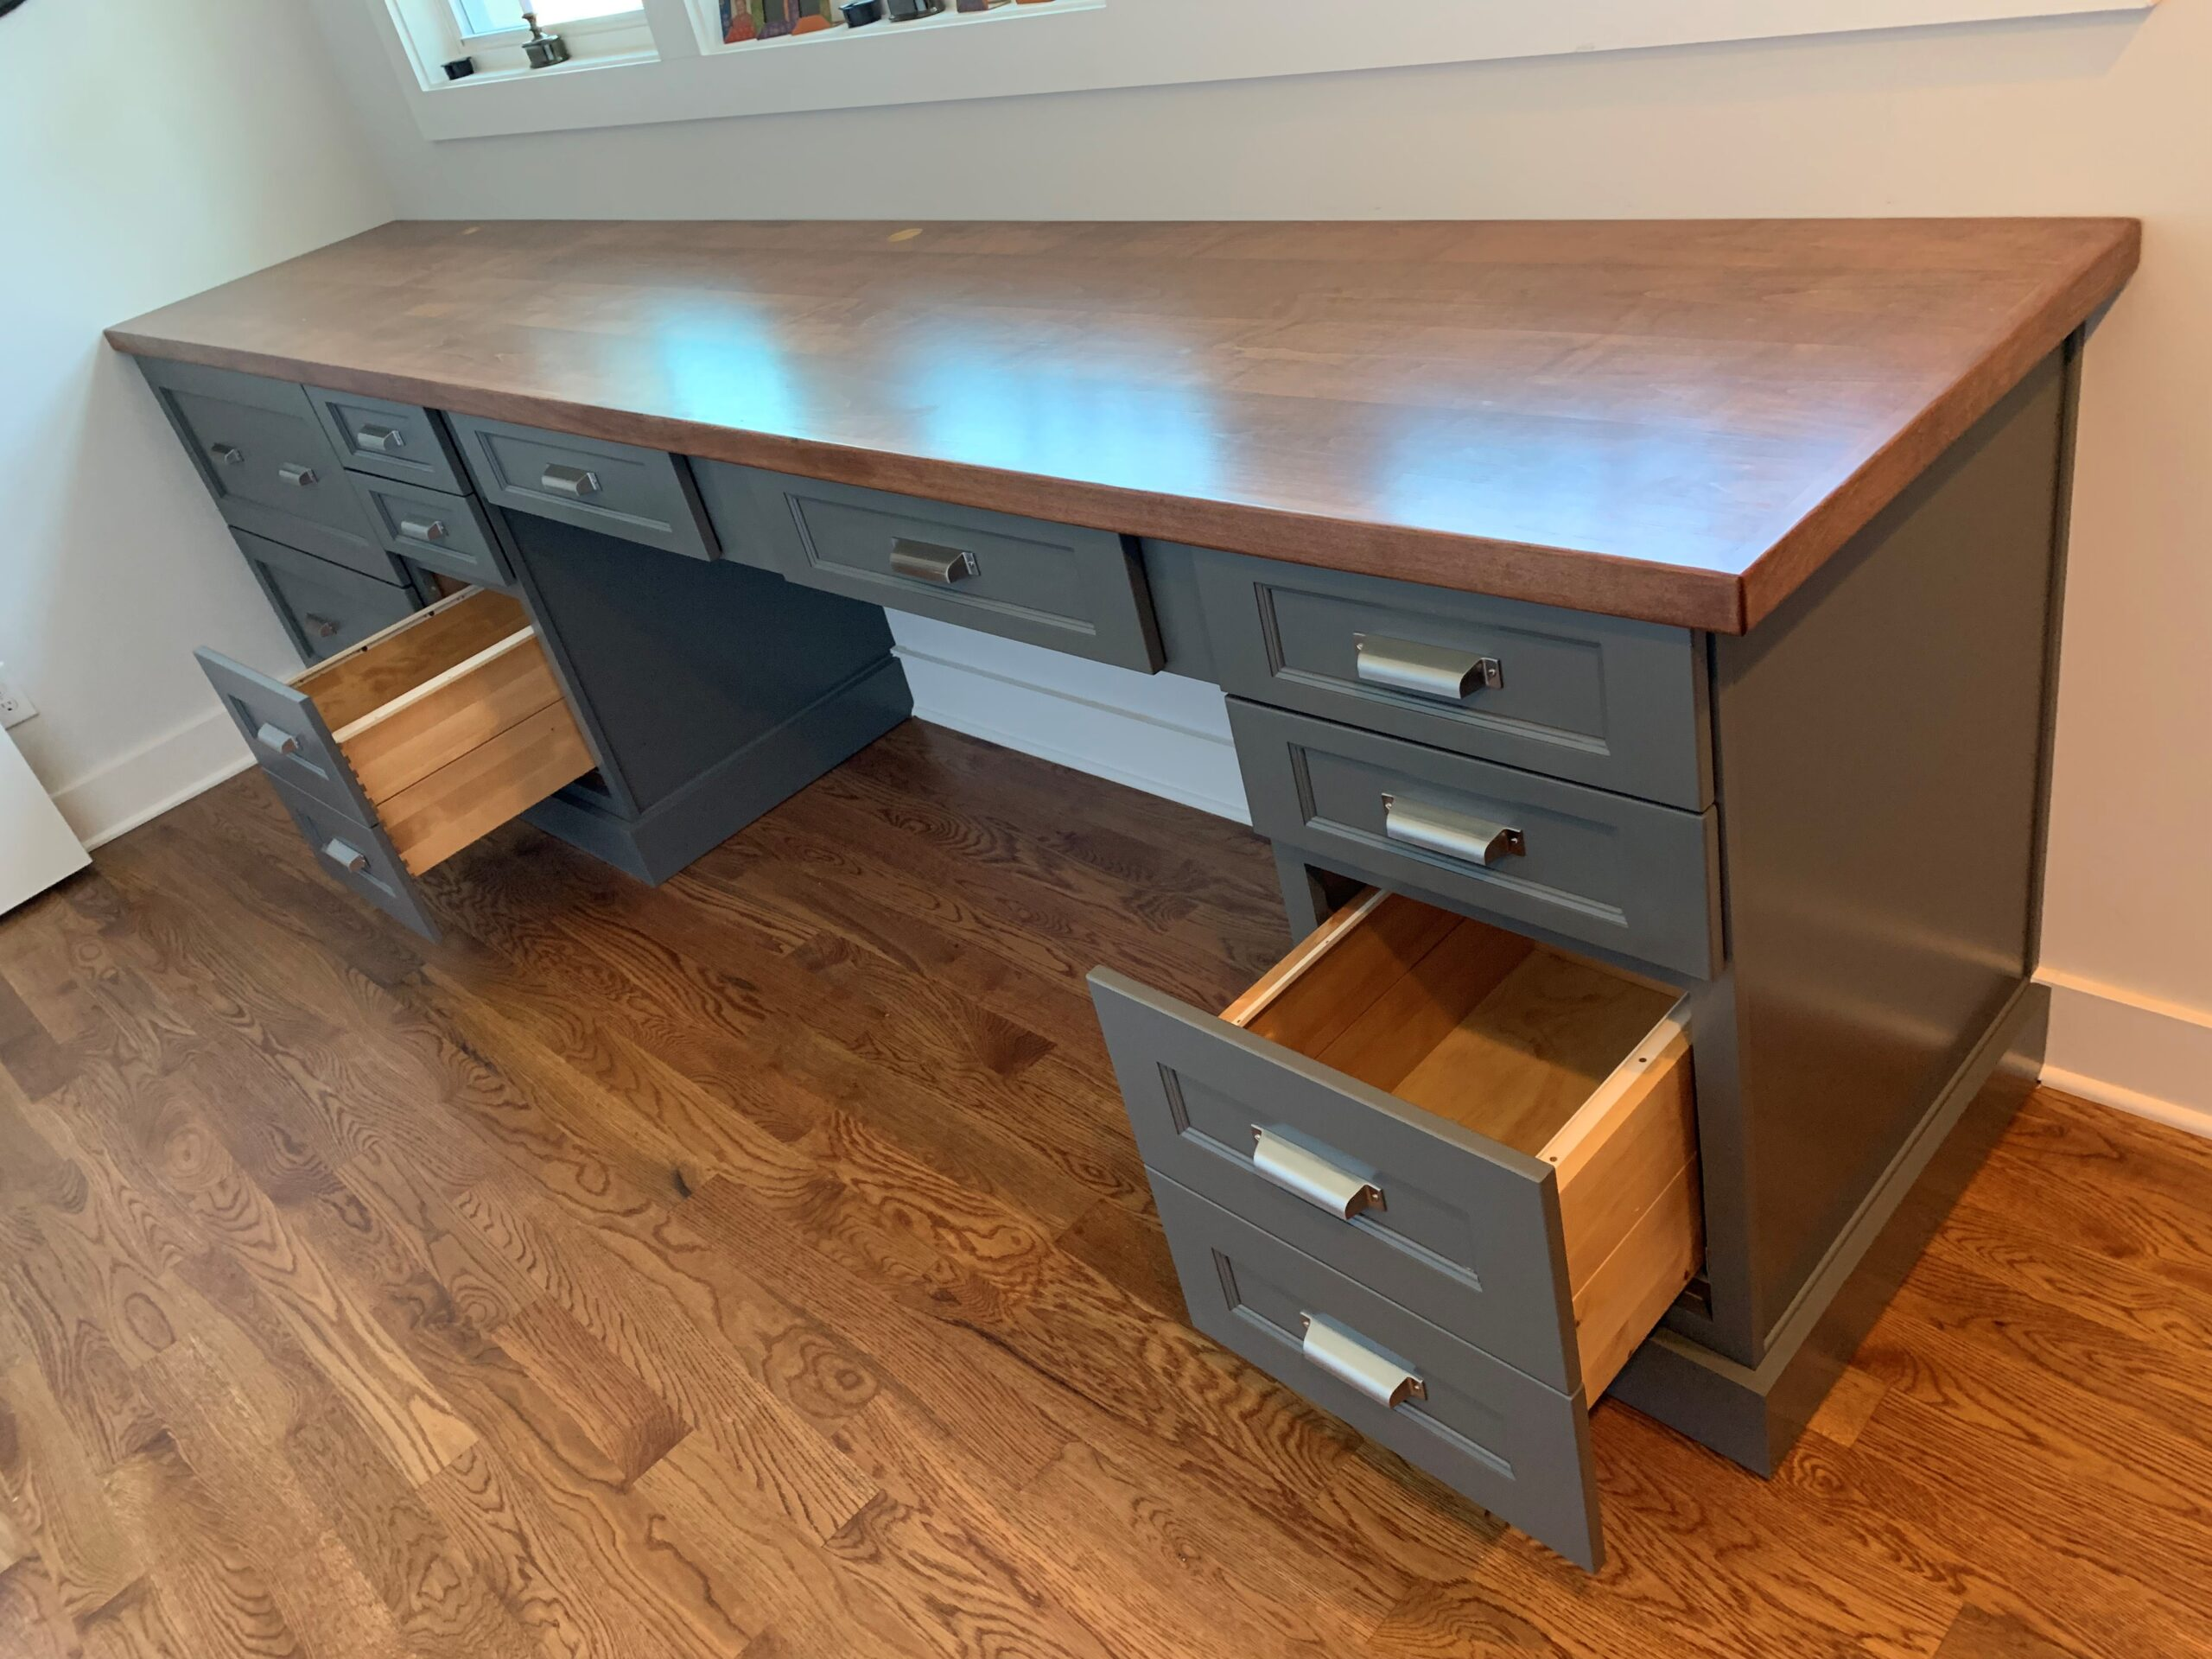 Kitchen Cabinets Raleigh Modern Office Desk Hampton Greystone Paint Wood Top File Drawers